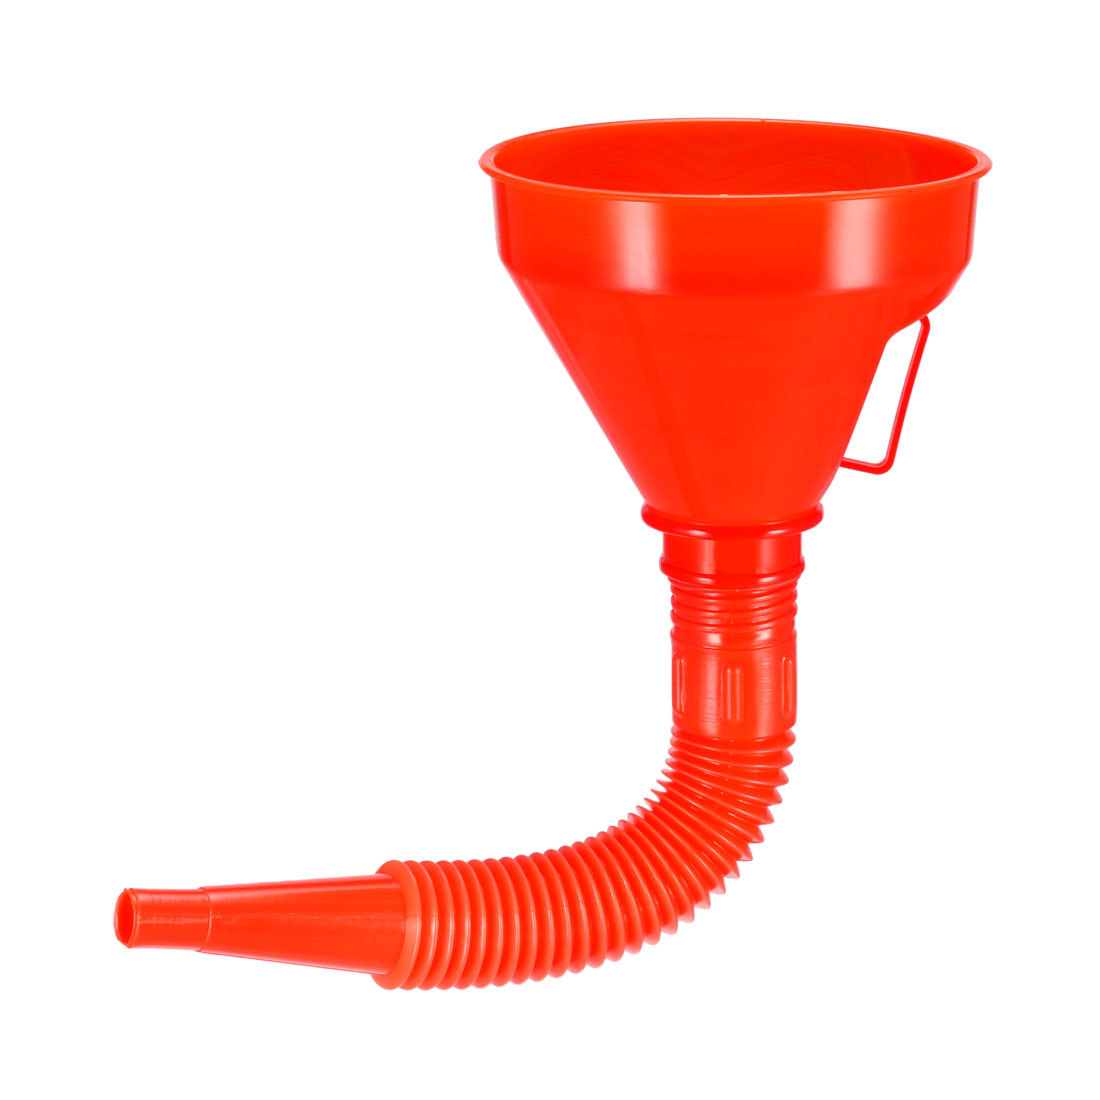 Filter Funnel 5 inch Plastic Feul Funnel with Tube for Petrol Engine Oil Water